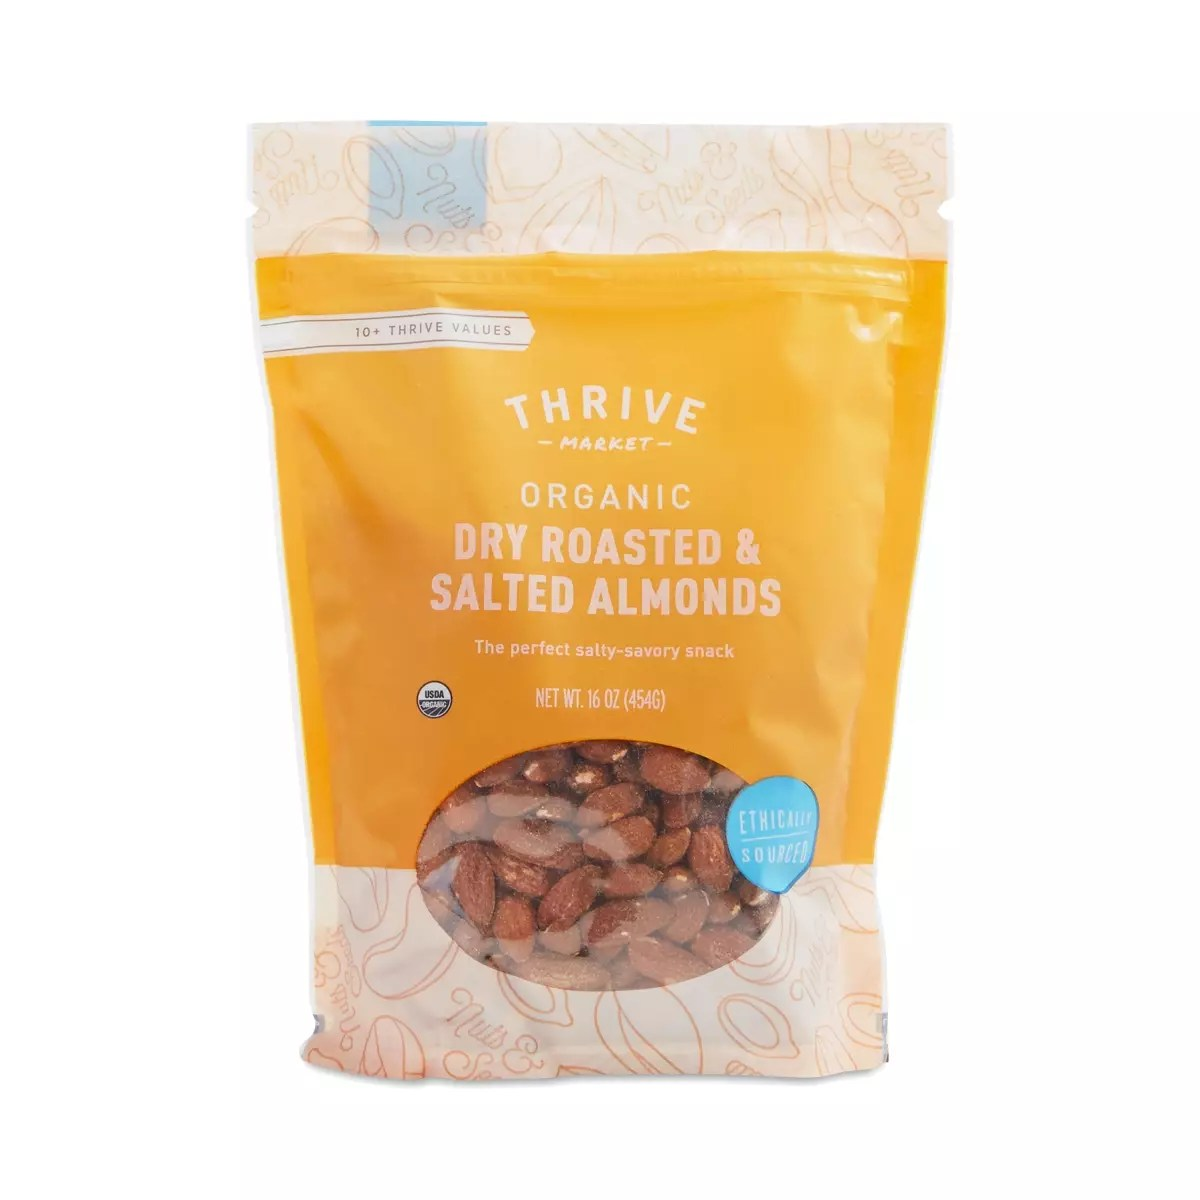 Organic Dry Roasted & Salted Almonds